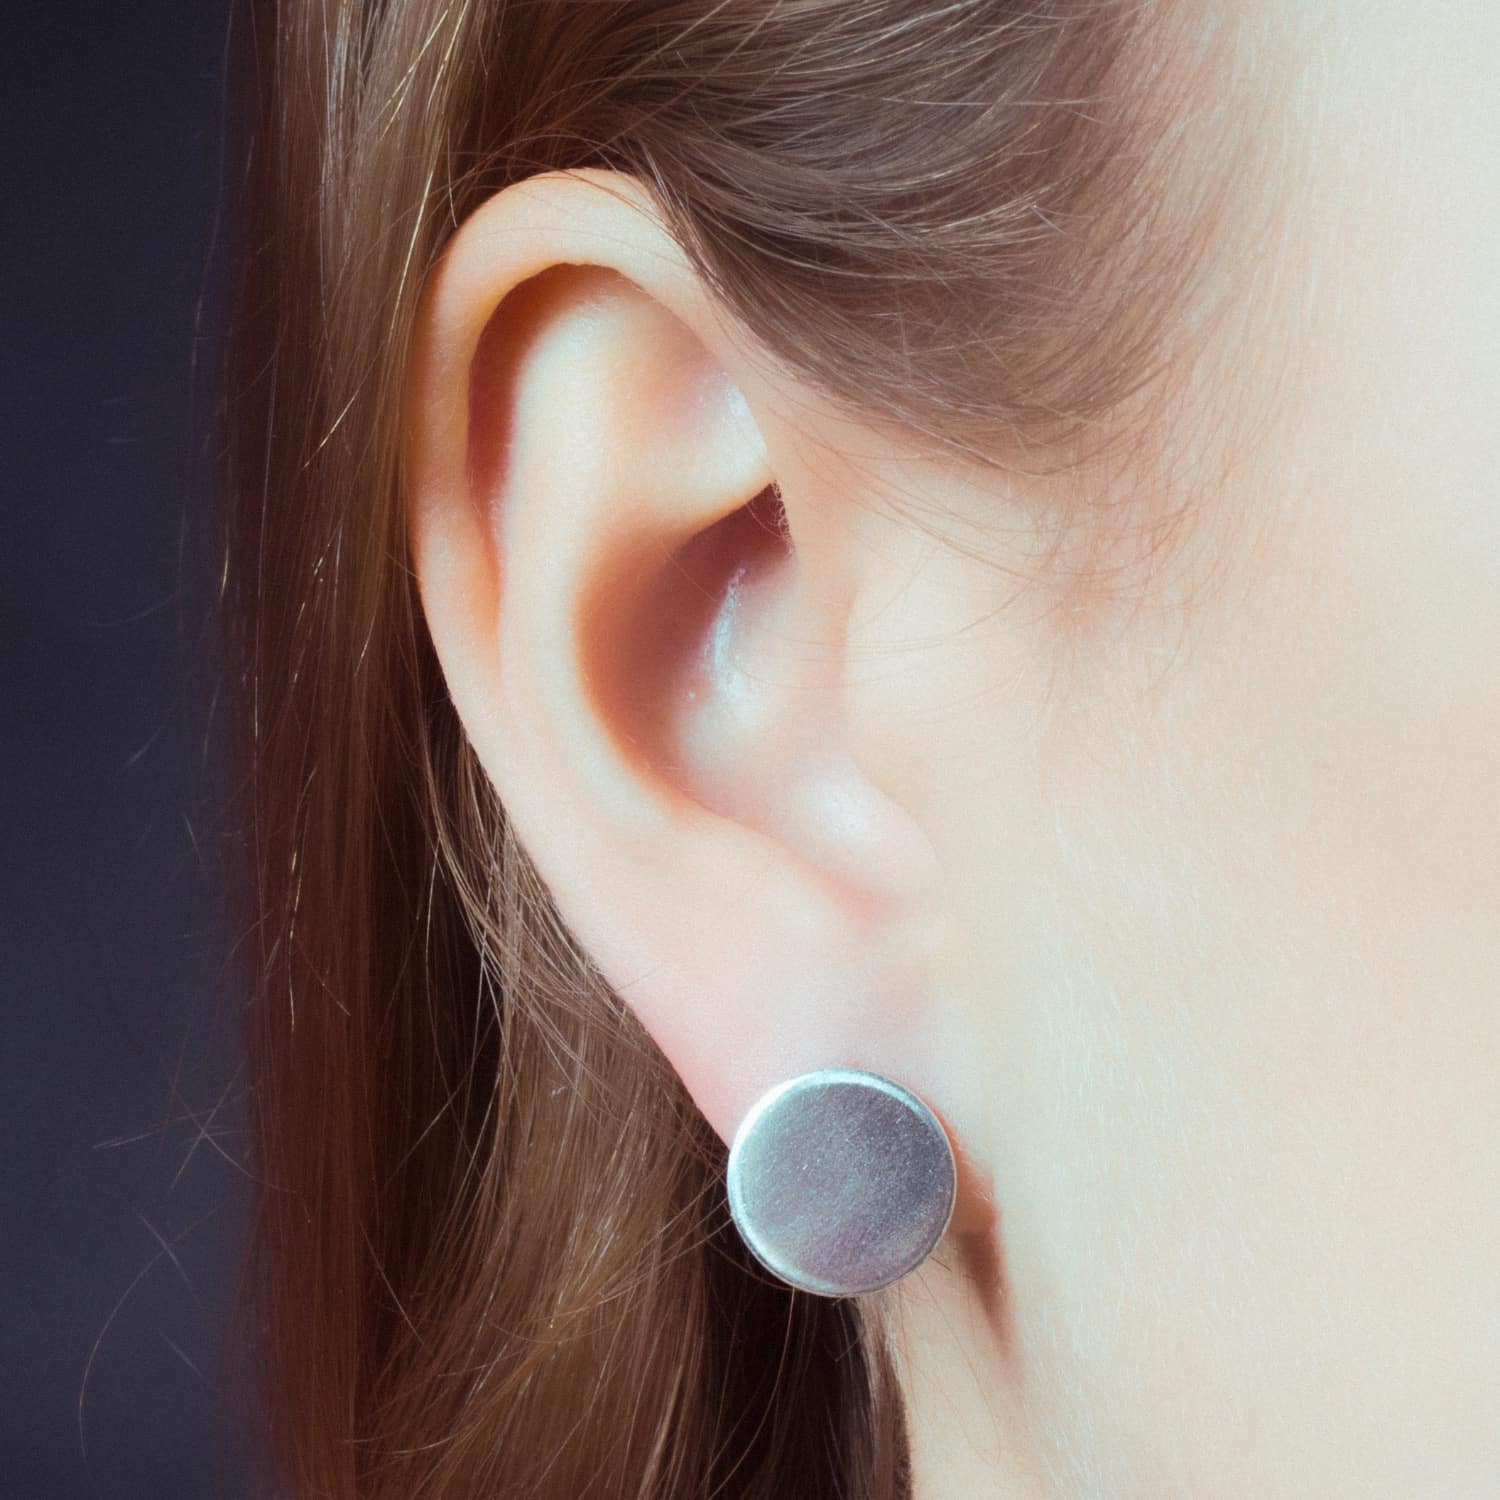 f8b63b51a0cc8 Large Circle Disc Stud Earrings Sterling Silver by Lucy Ashton Jewellery